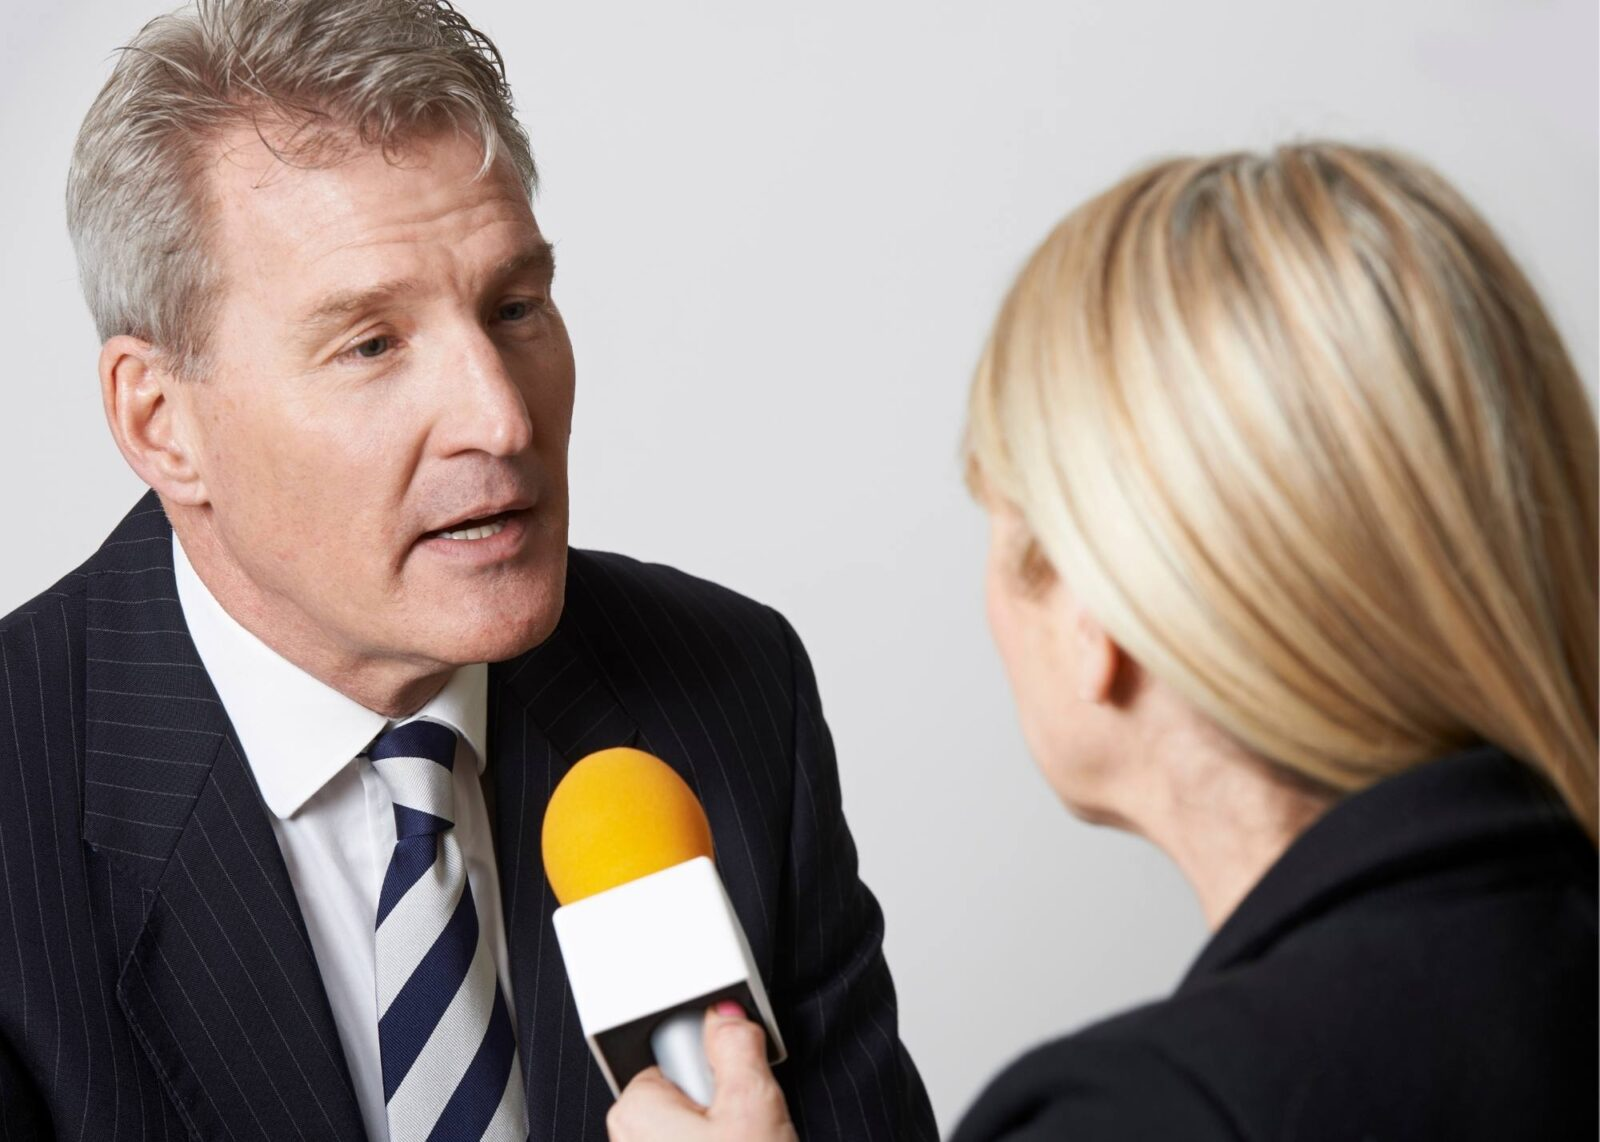 man being interviewed